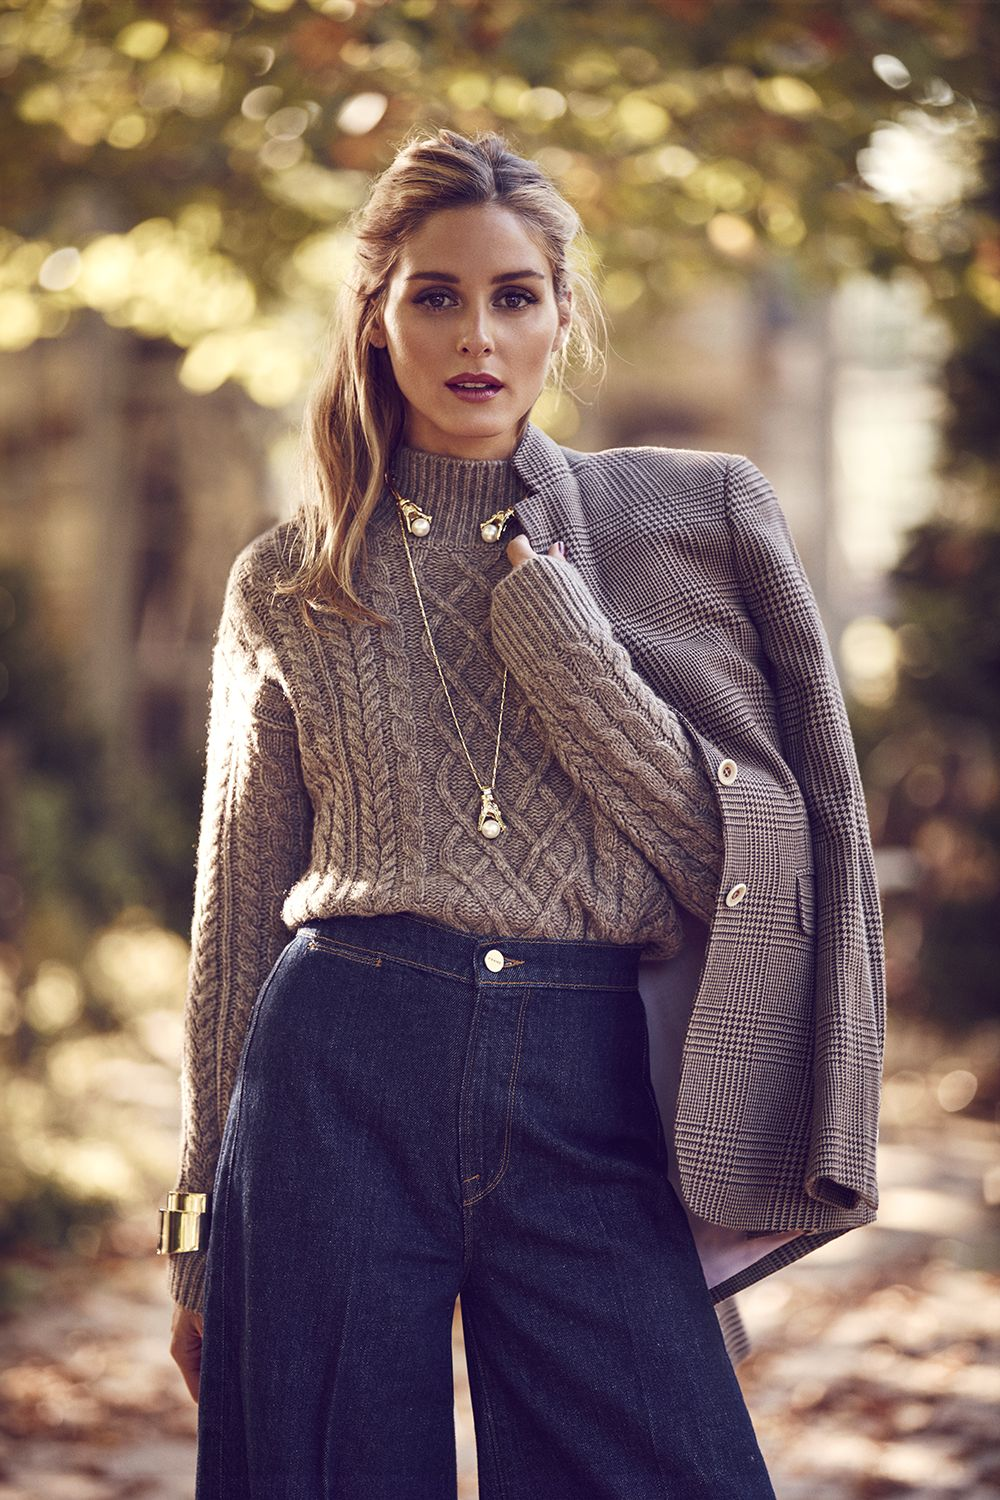 Olivia Palermo Is Definitely Not Down with Crocs, Reveals the Most Versatile Piece in Her Jewelry Collection